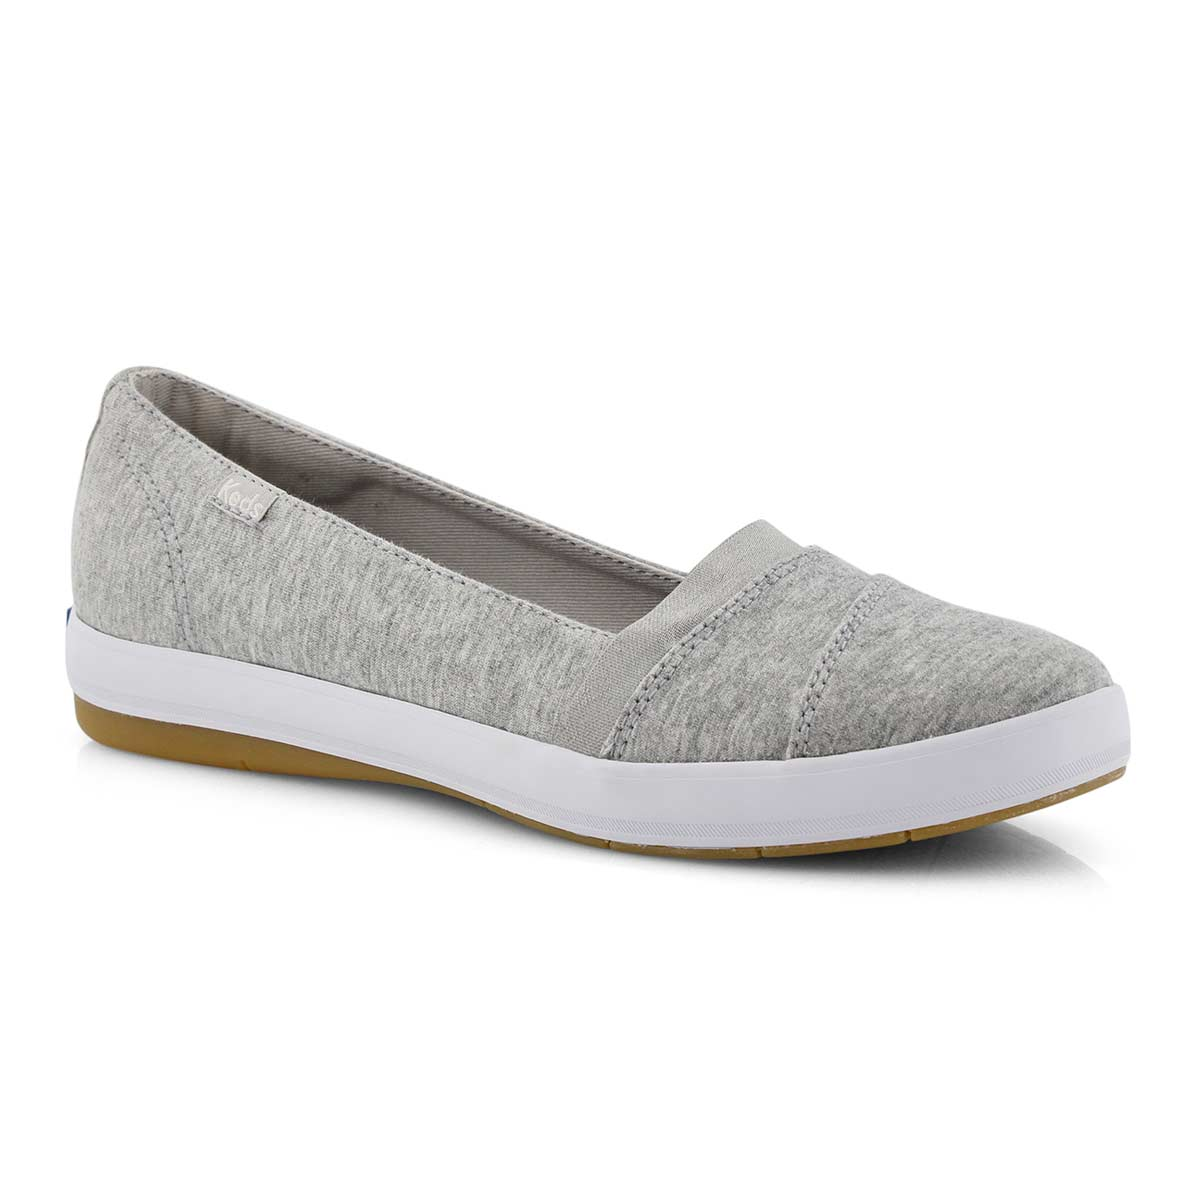 Lds Carmel Jersey lt grey slip on shoe